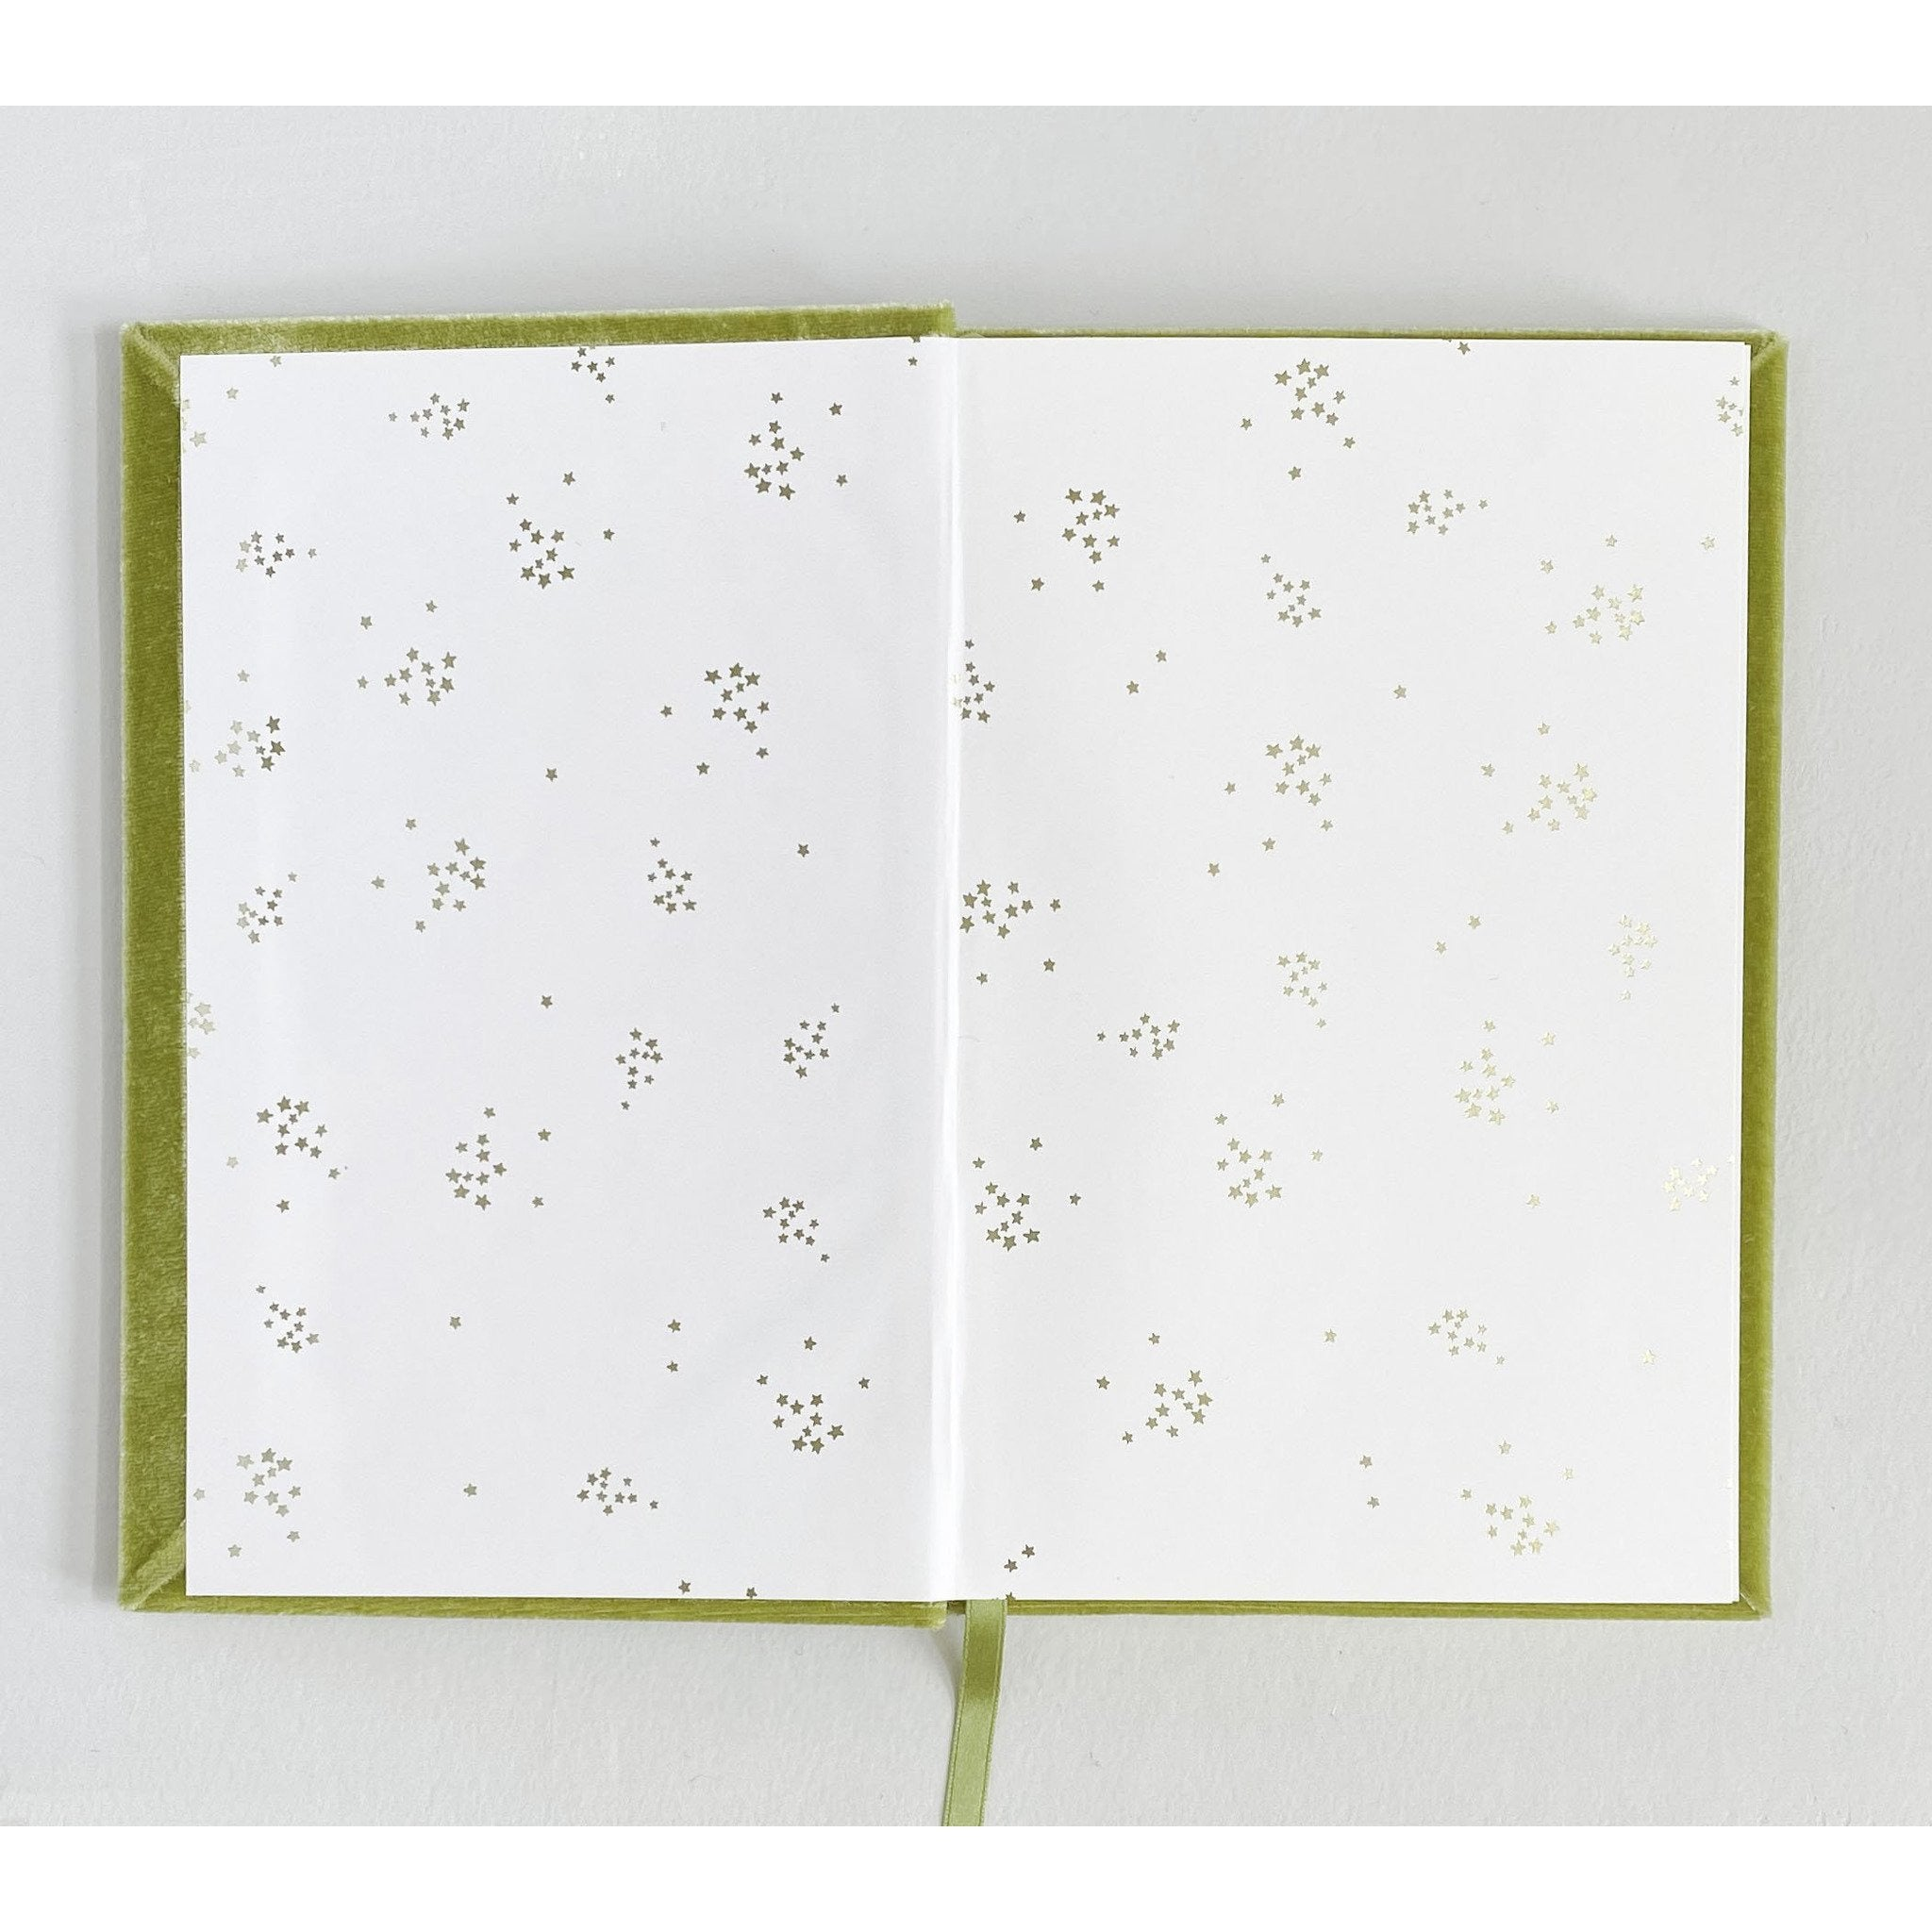 Rumi Quote Blessings Handmade SIlk Velvet-Covered Lined Notebook - The First Snow